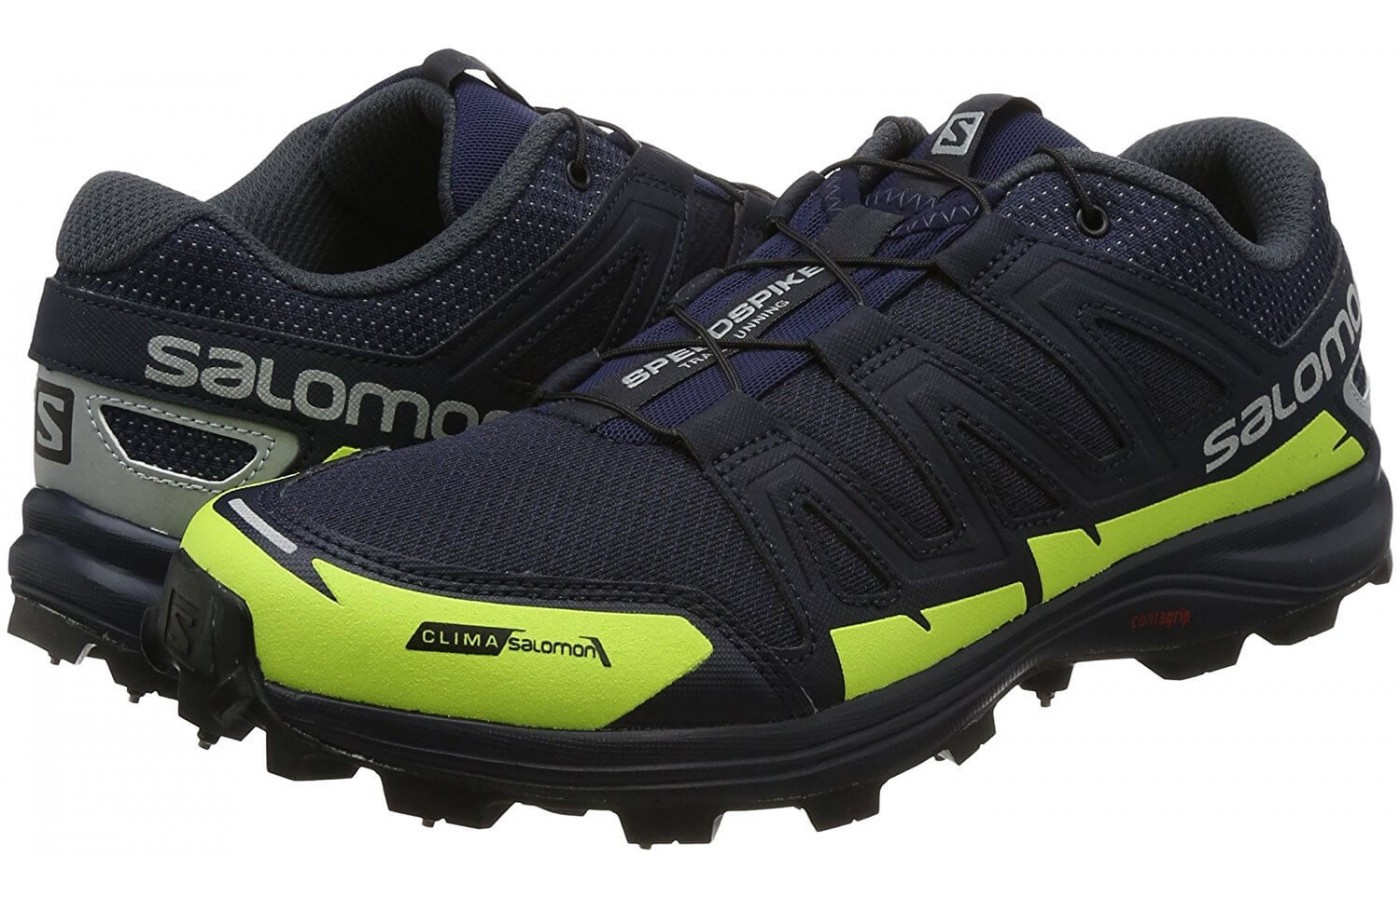 The Salomon Speedspike CS has a 6mm drop height